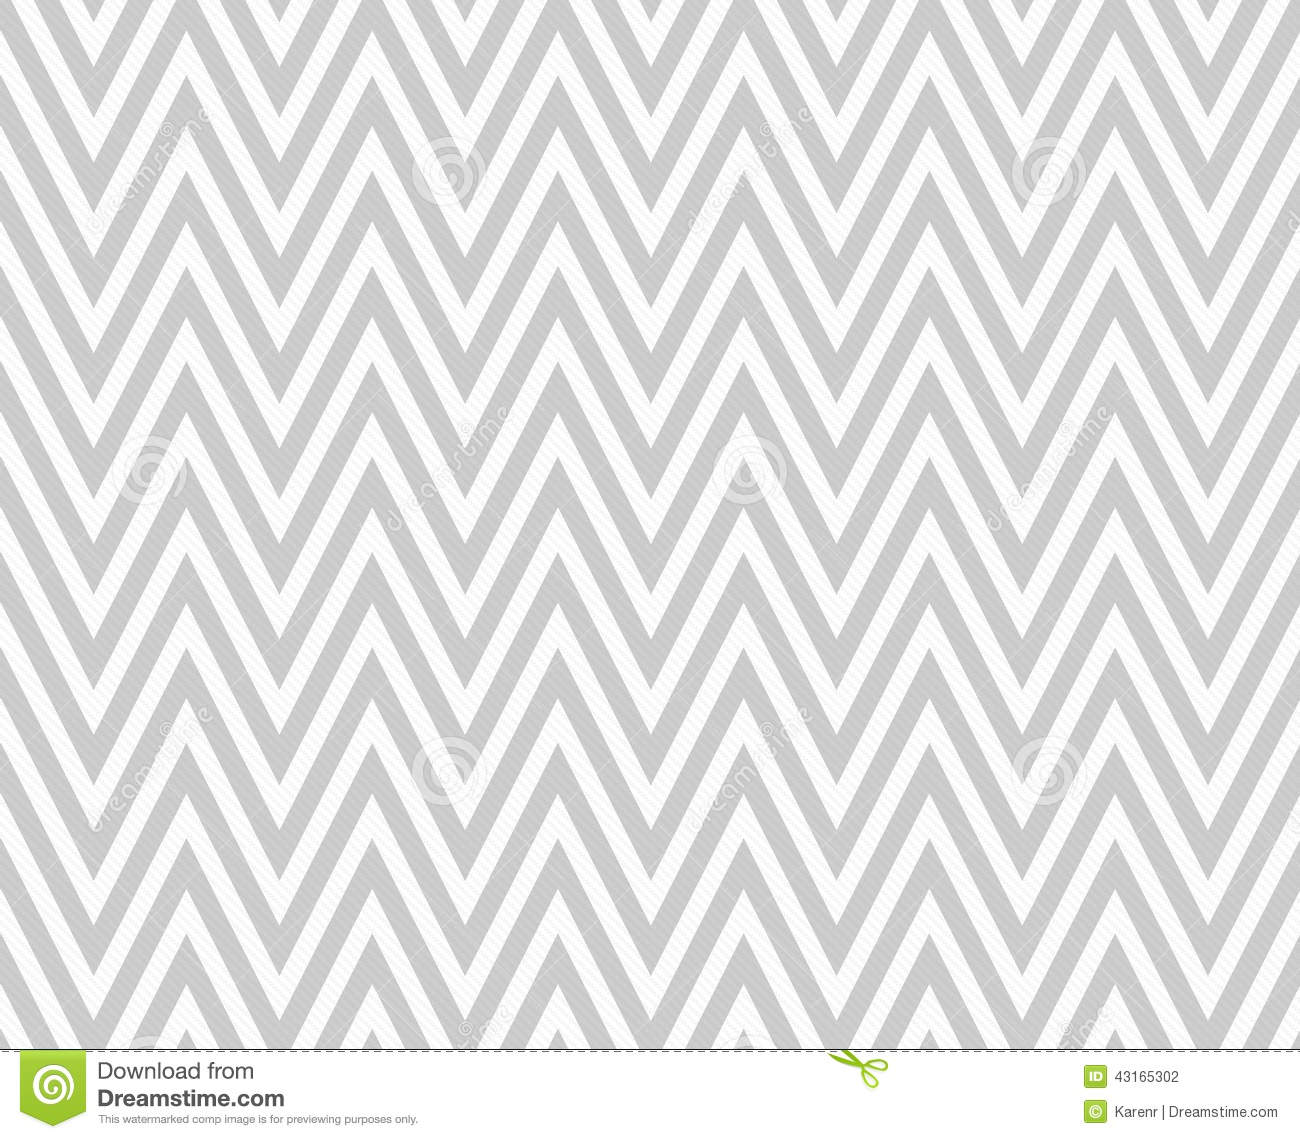 Gray And White Zigzag Textured Fabric Repeat Pattern